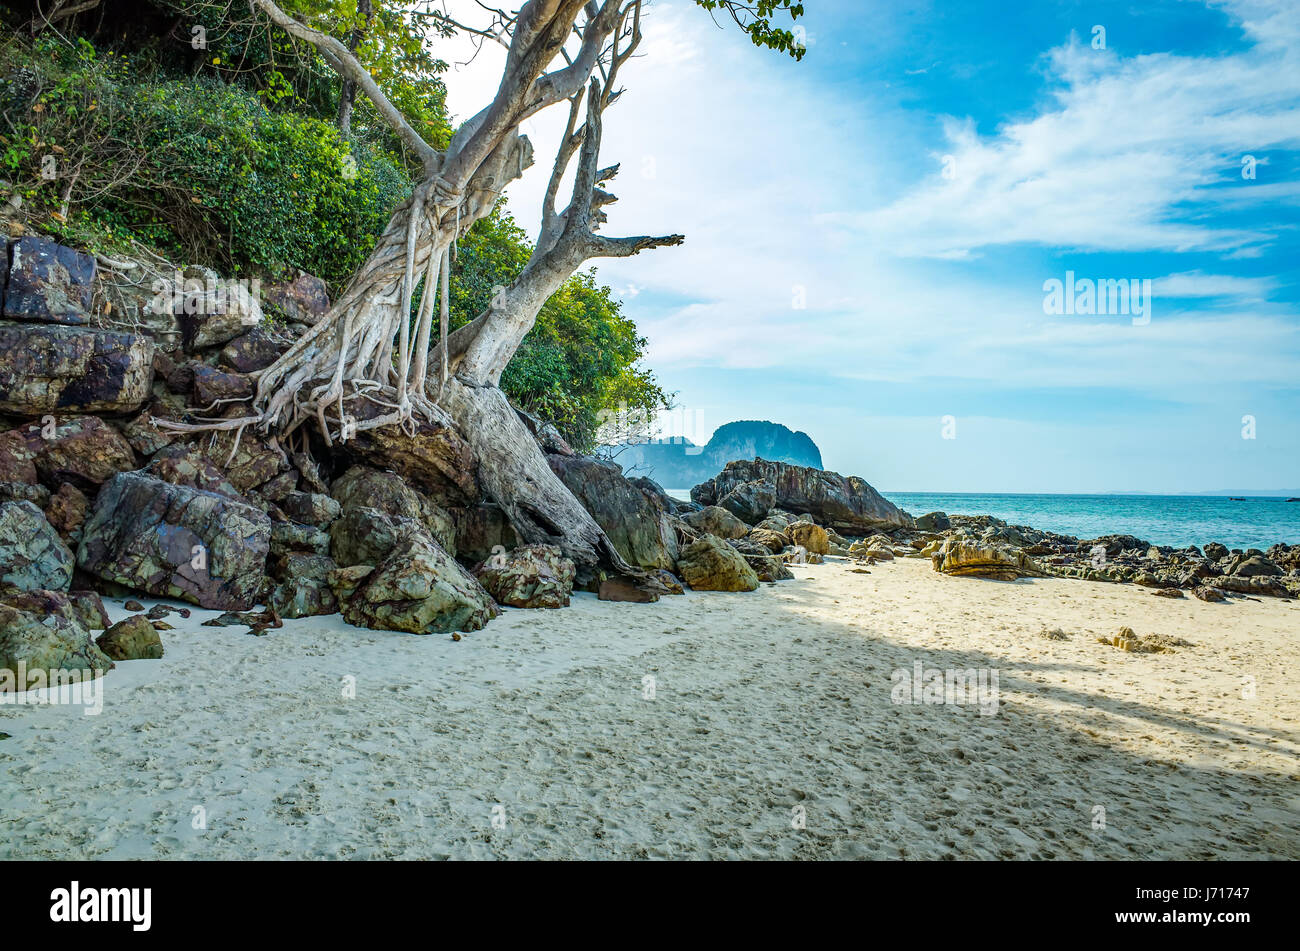 Wood and stones on the beach Phuket, Thailand - Stock Image